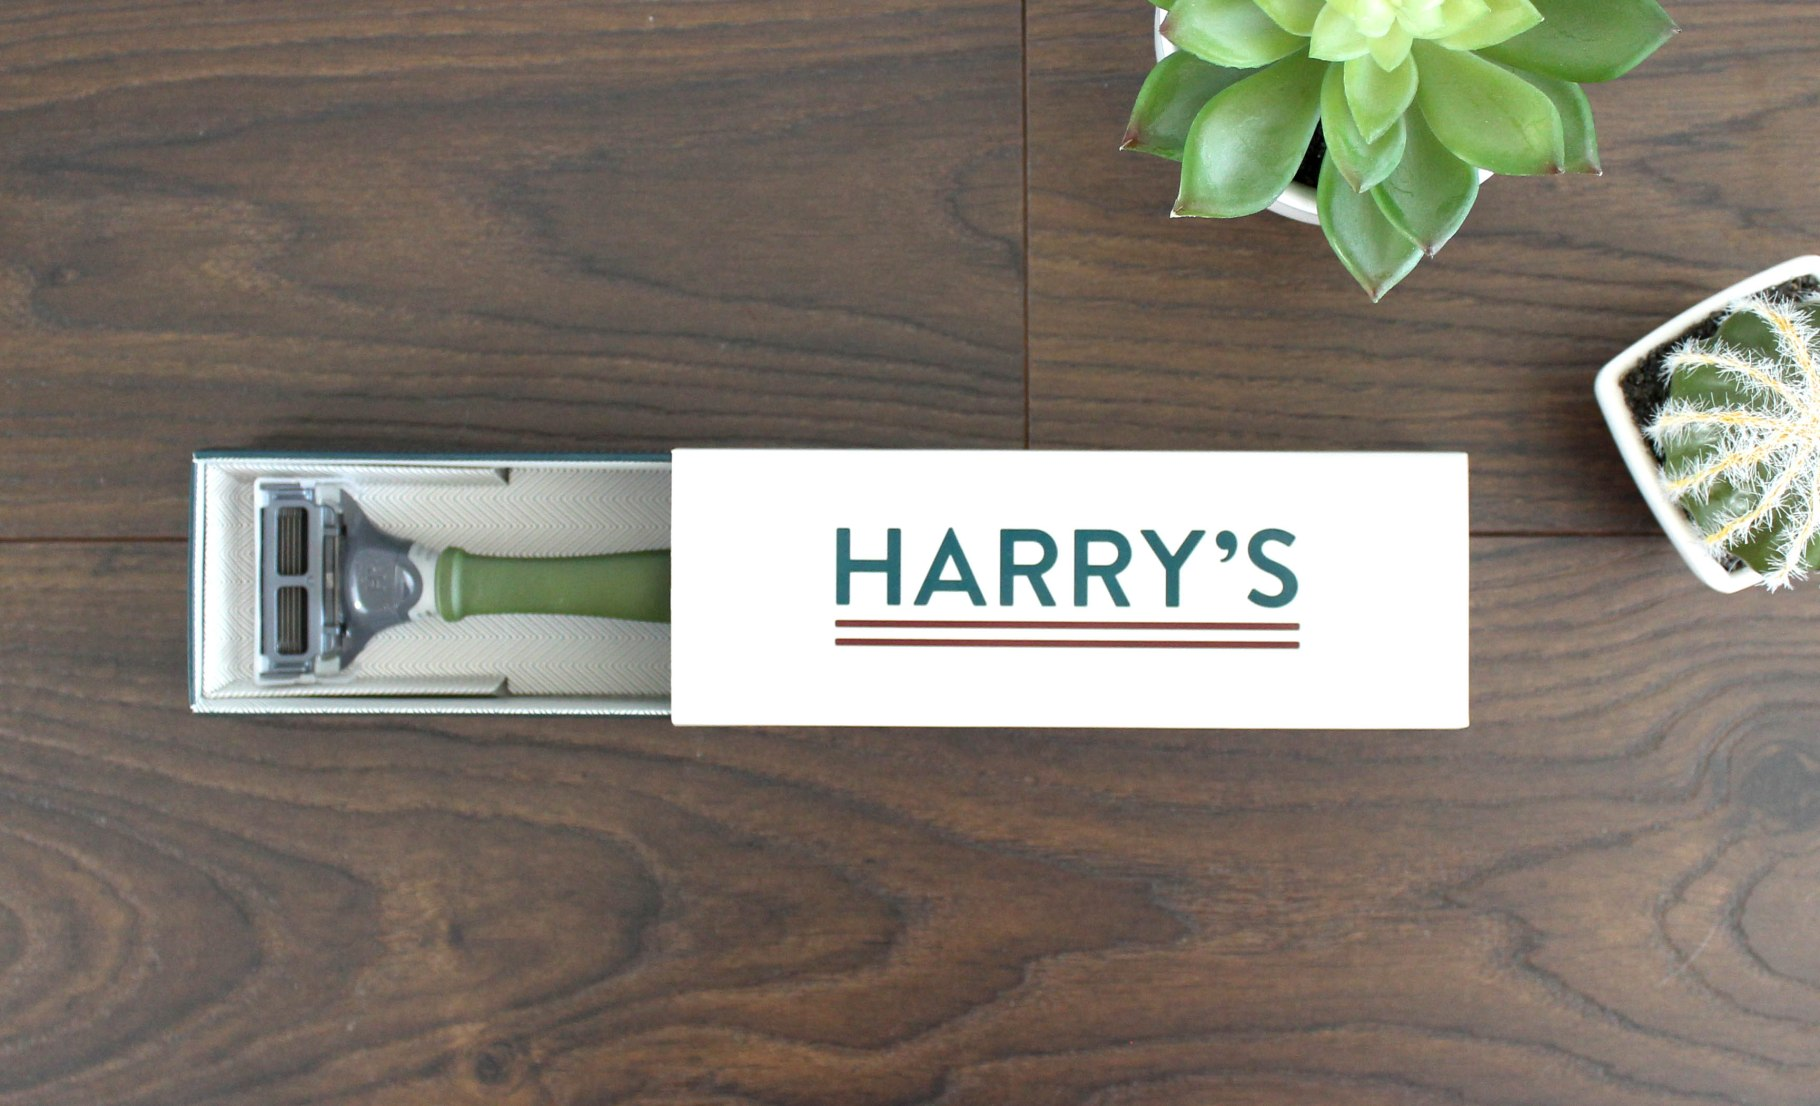 Harry's Truman Razor Why pay nearly $5 for a razor blade when you can spend $1.75?